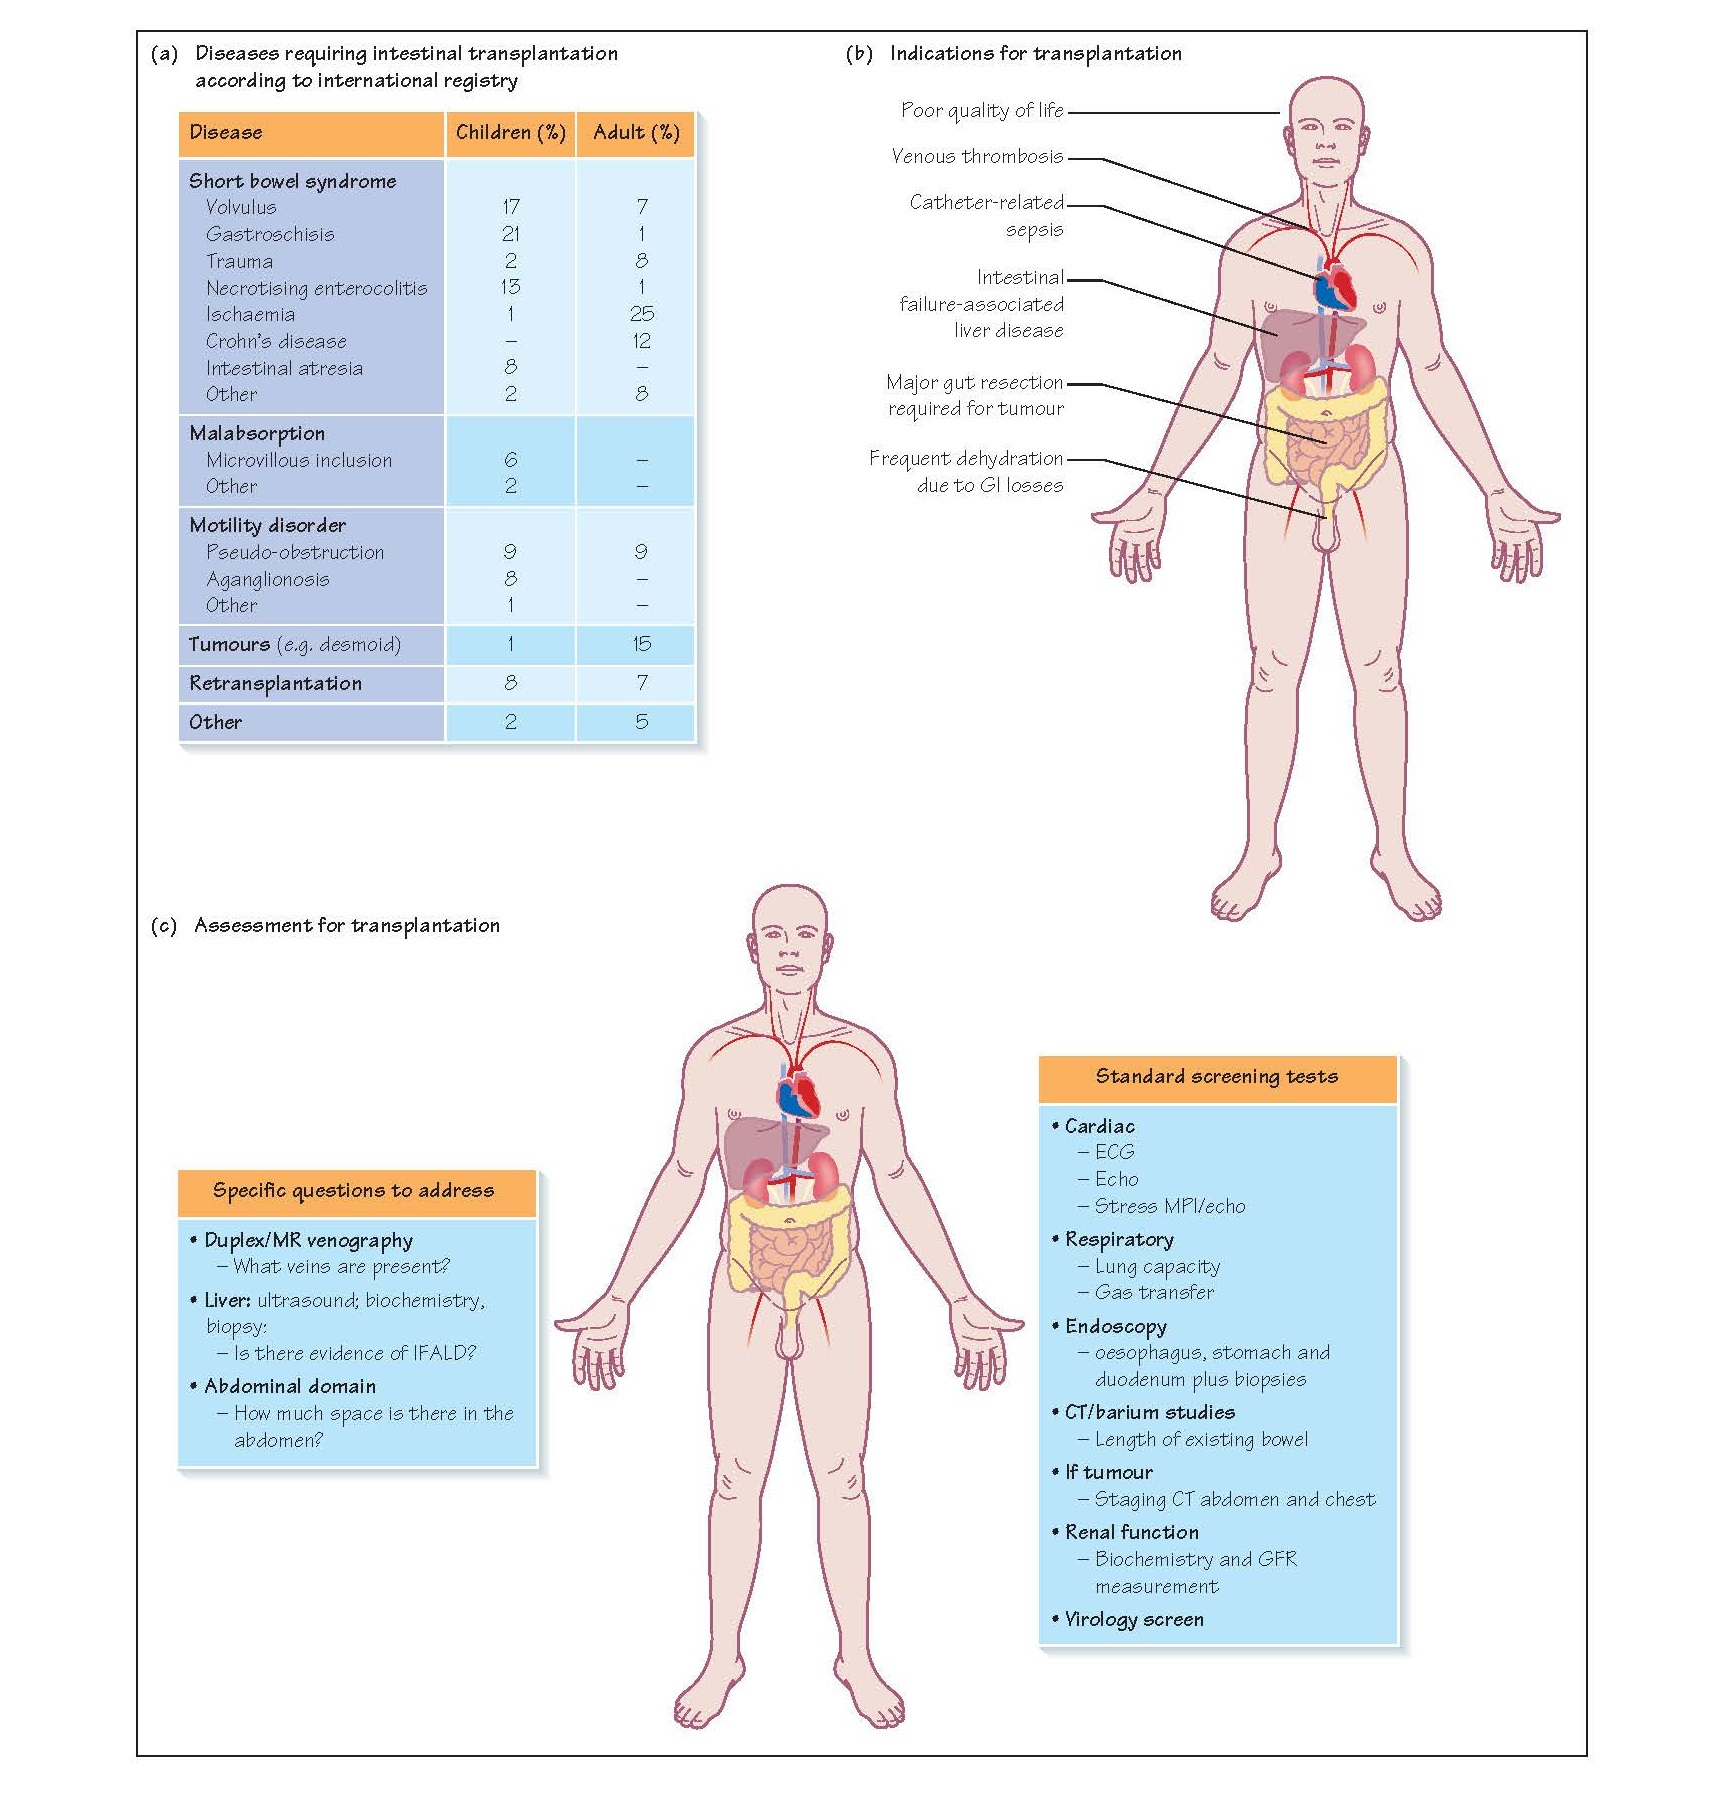 Intestinal Failure And Assessment, Venous thrombosis,